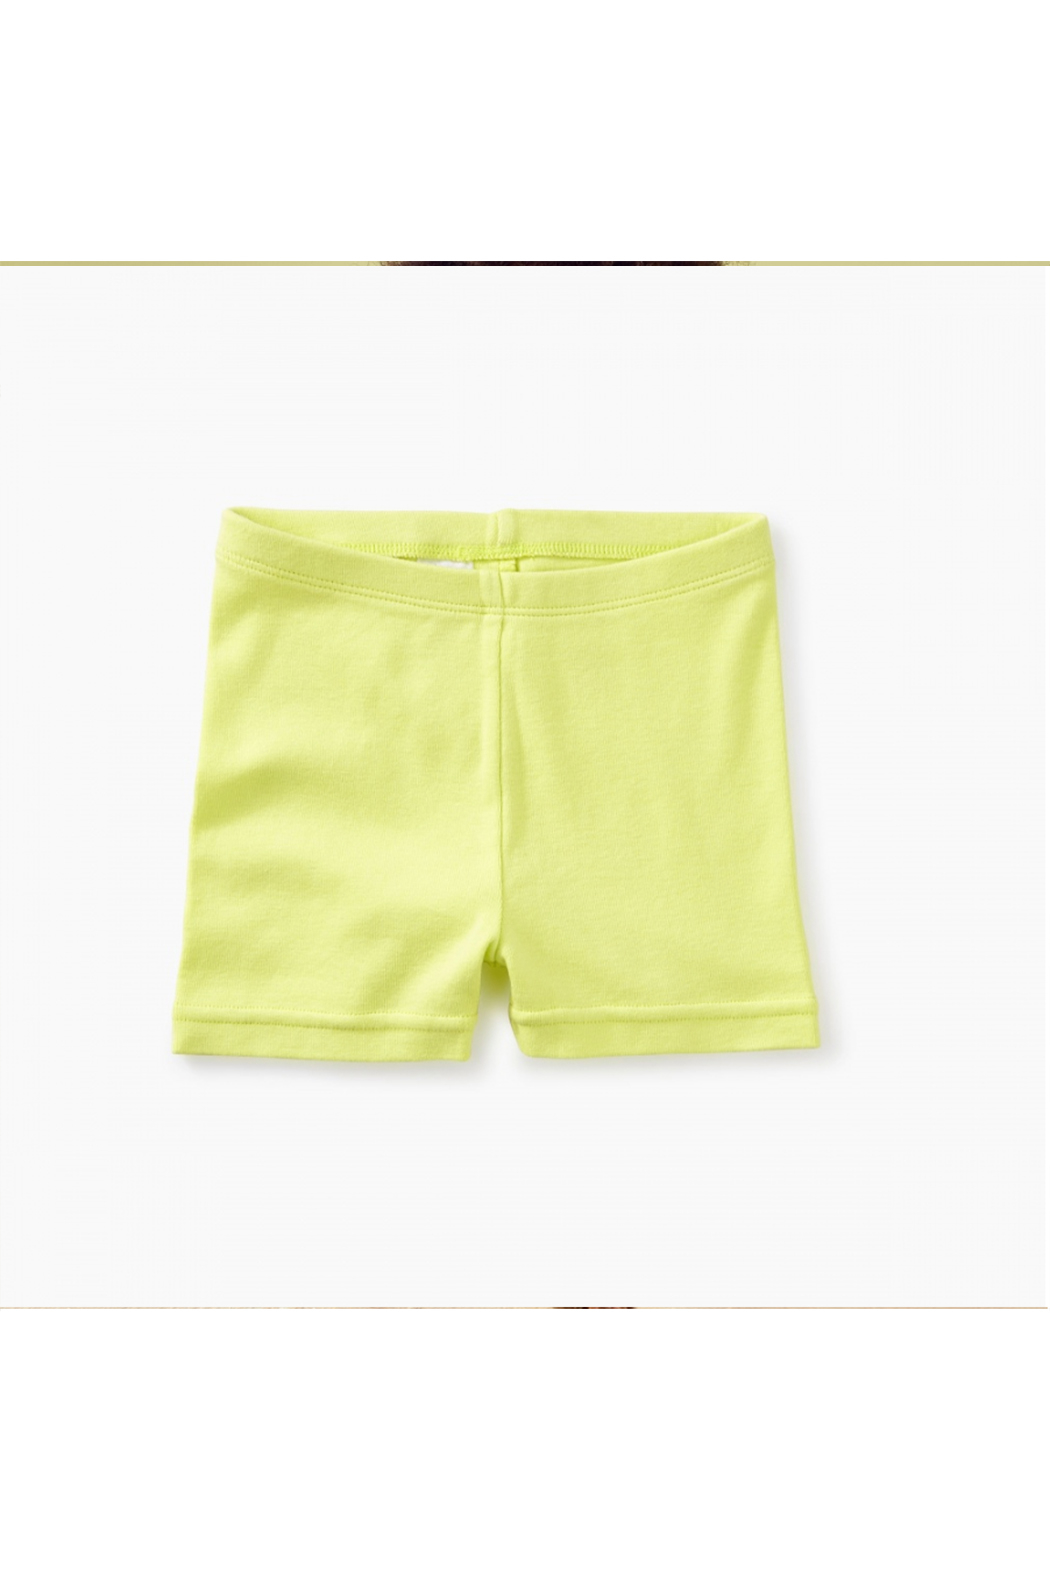 Tea Collection Solids Somersault Shorts - Front Cropped Image